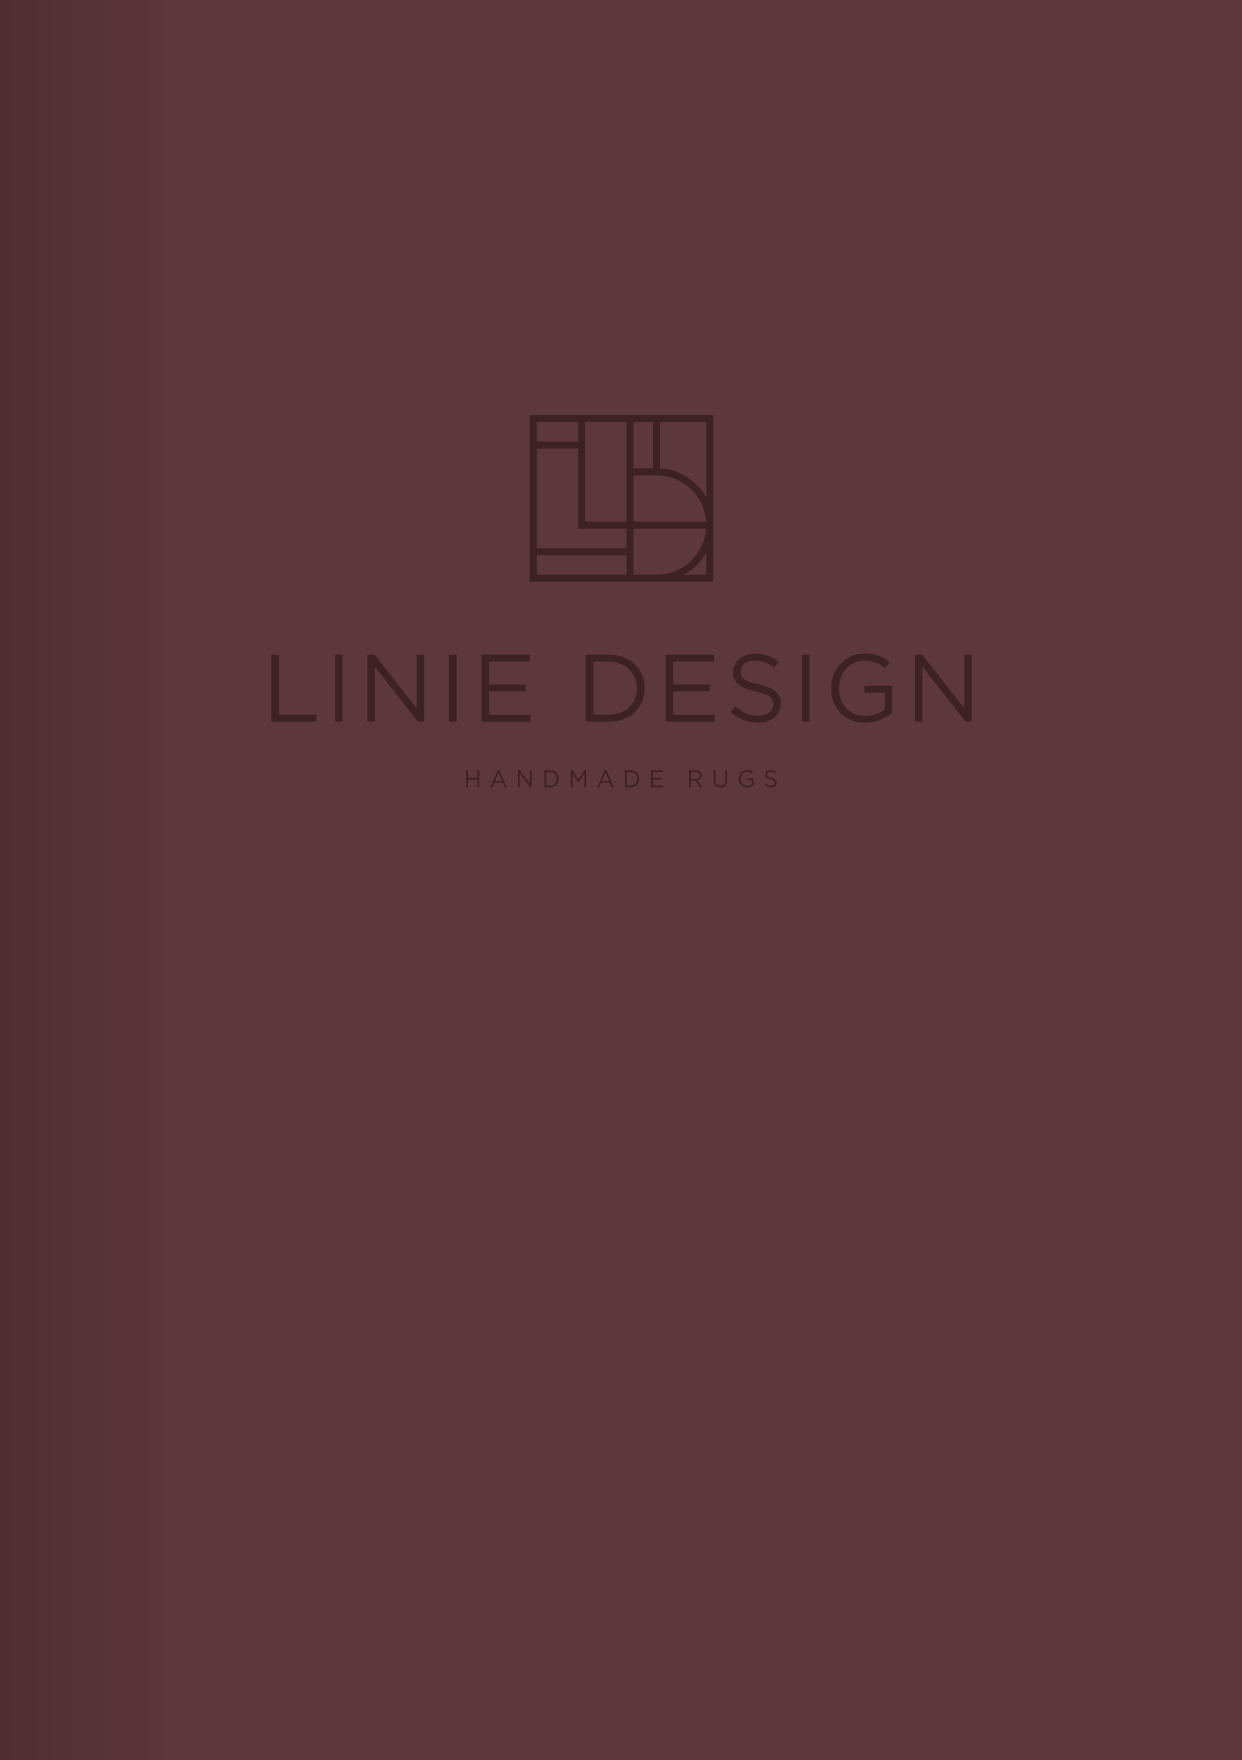 linie-design-selected-cover.png